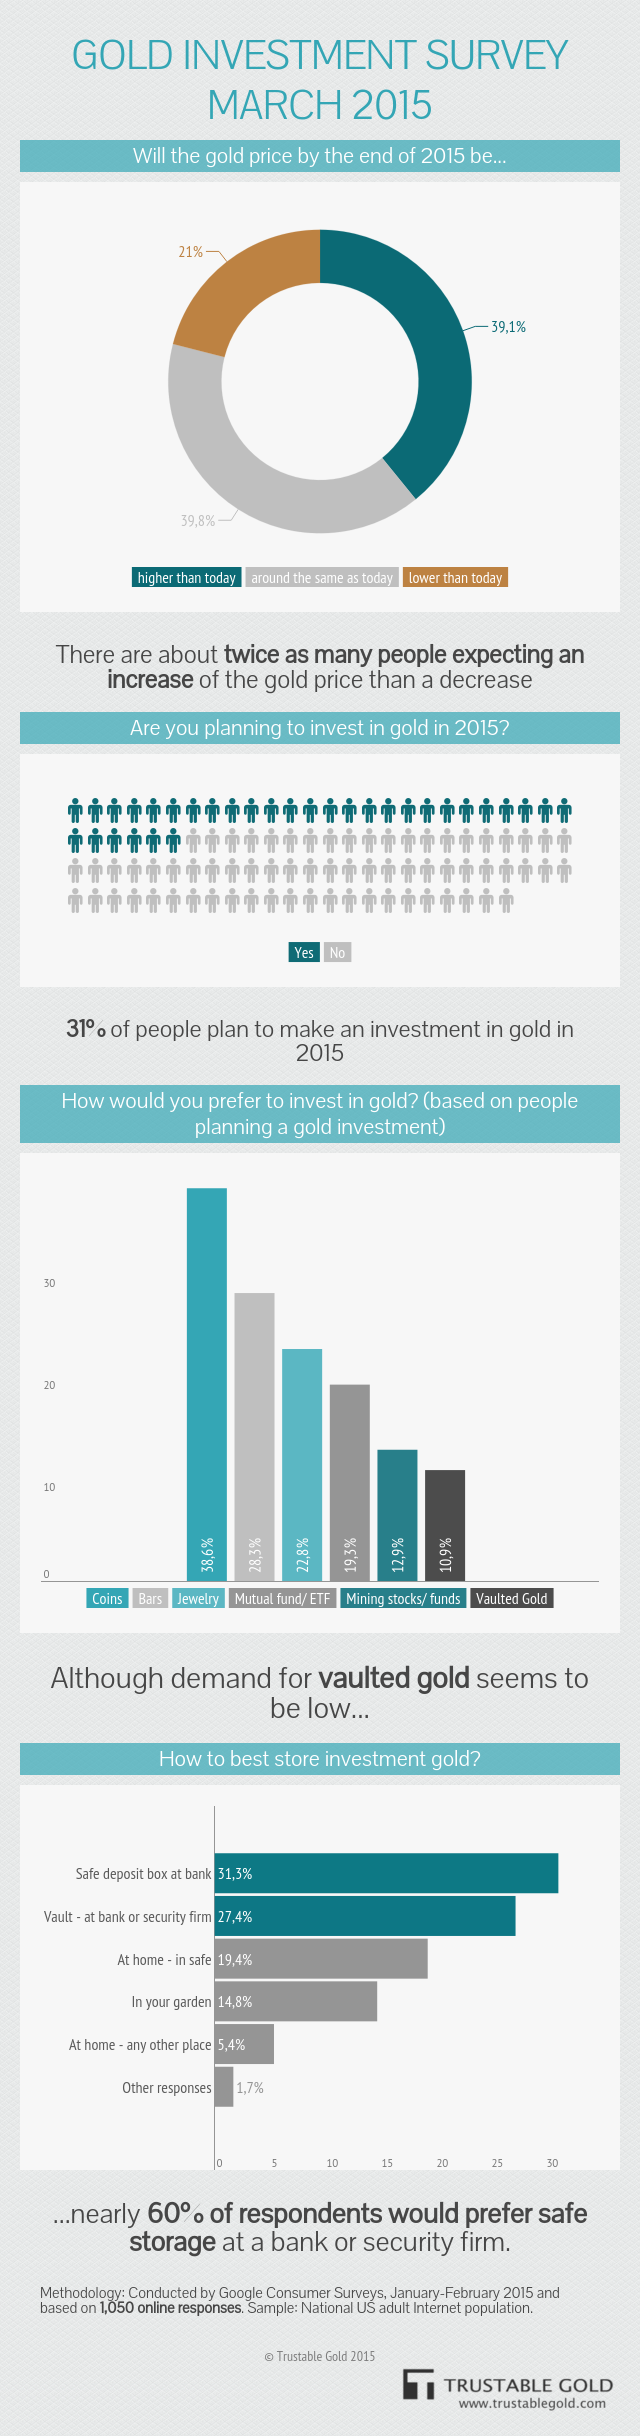 Gold Investment Survey March 2015